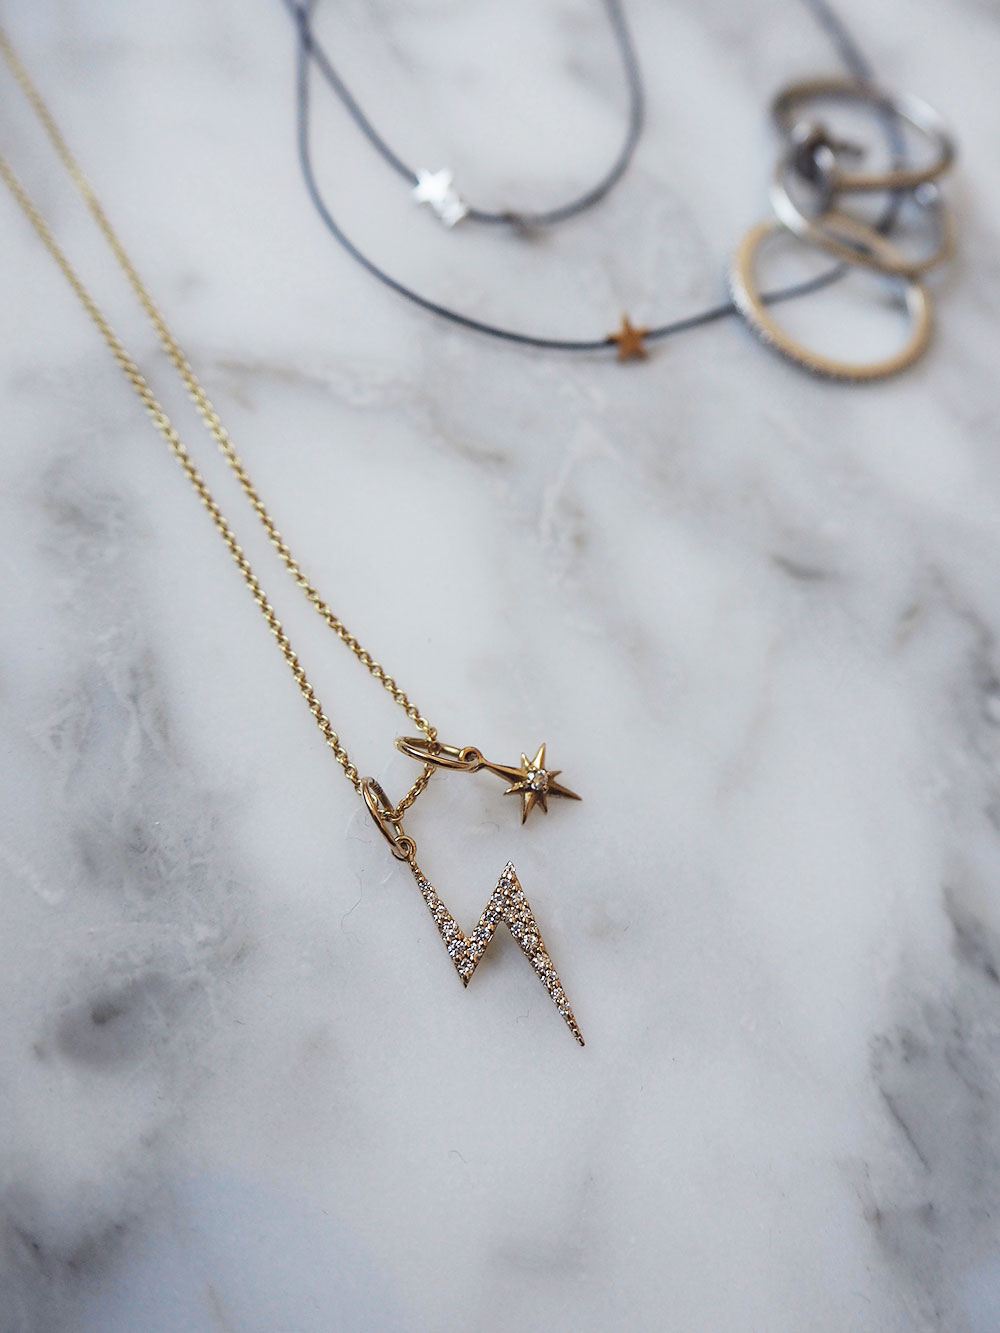 RosyCheeks-Nives-Jewelry-charm-necklace